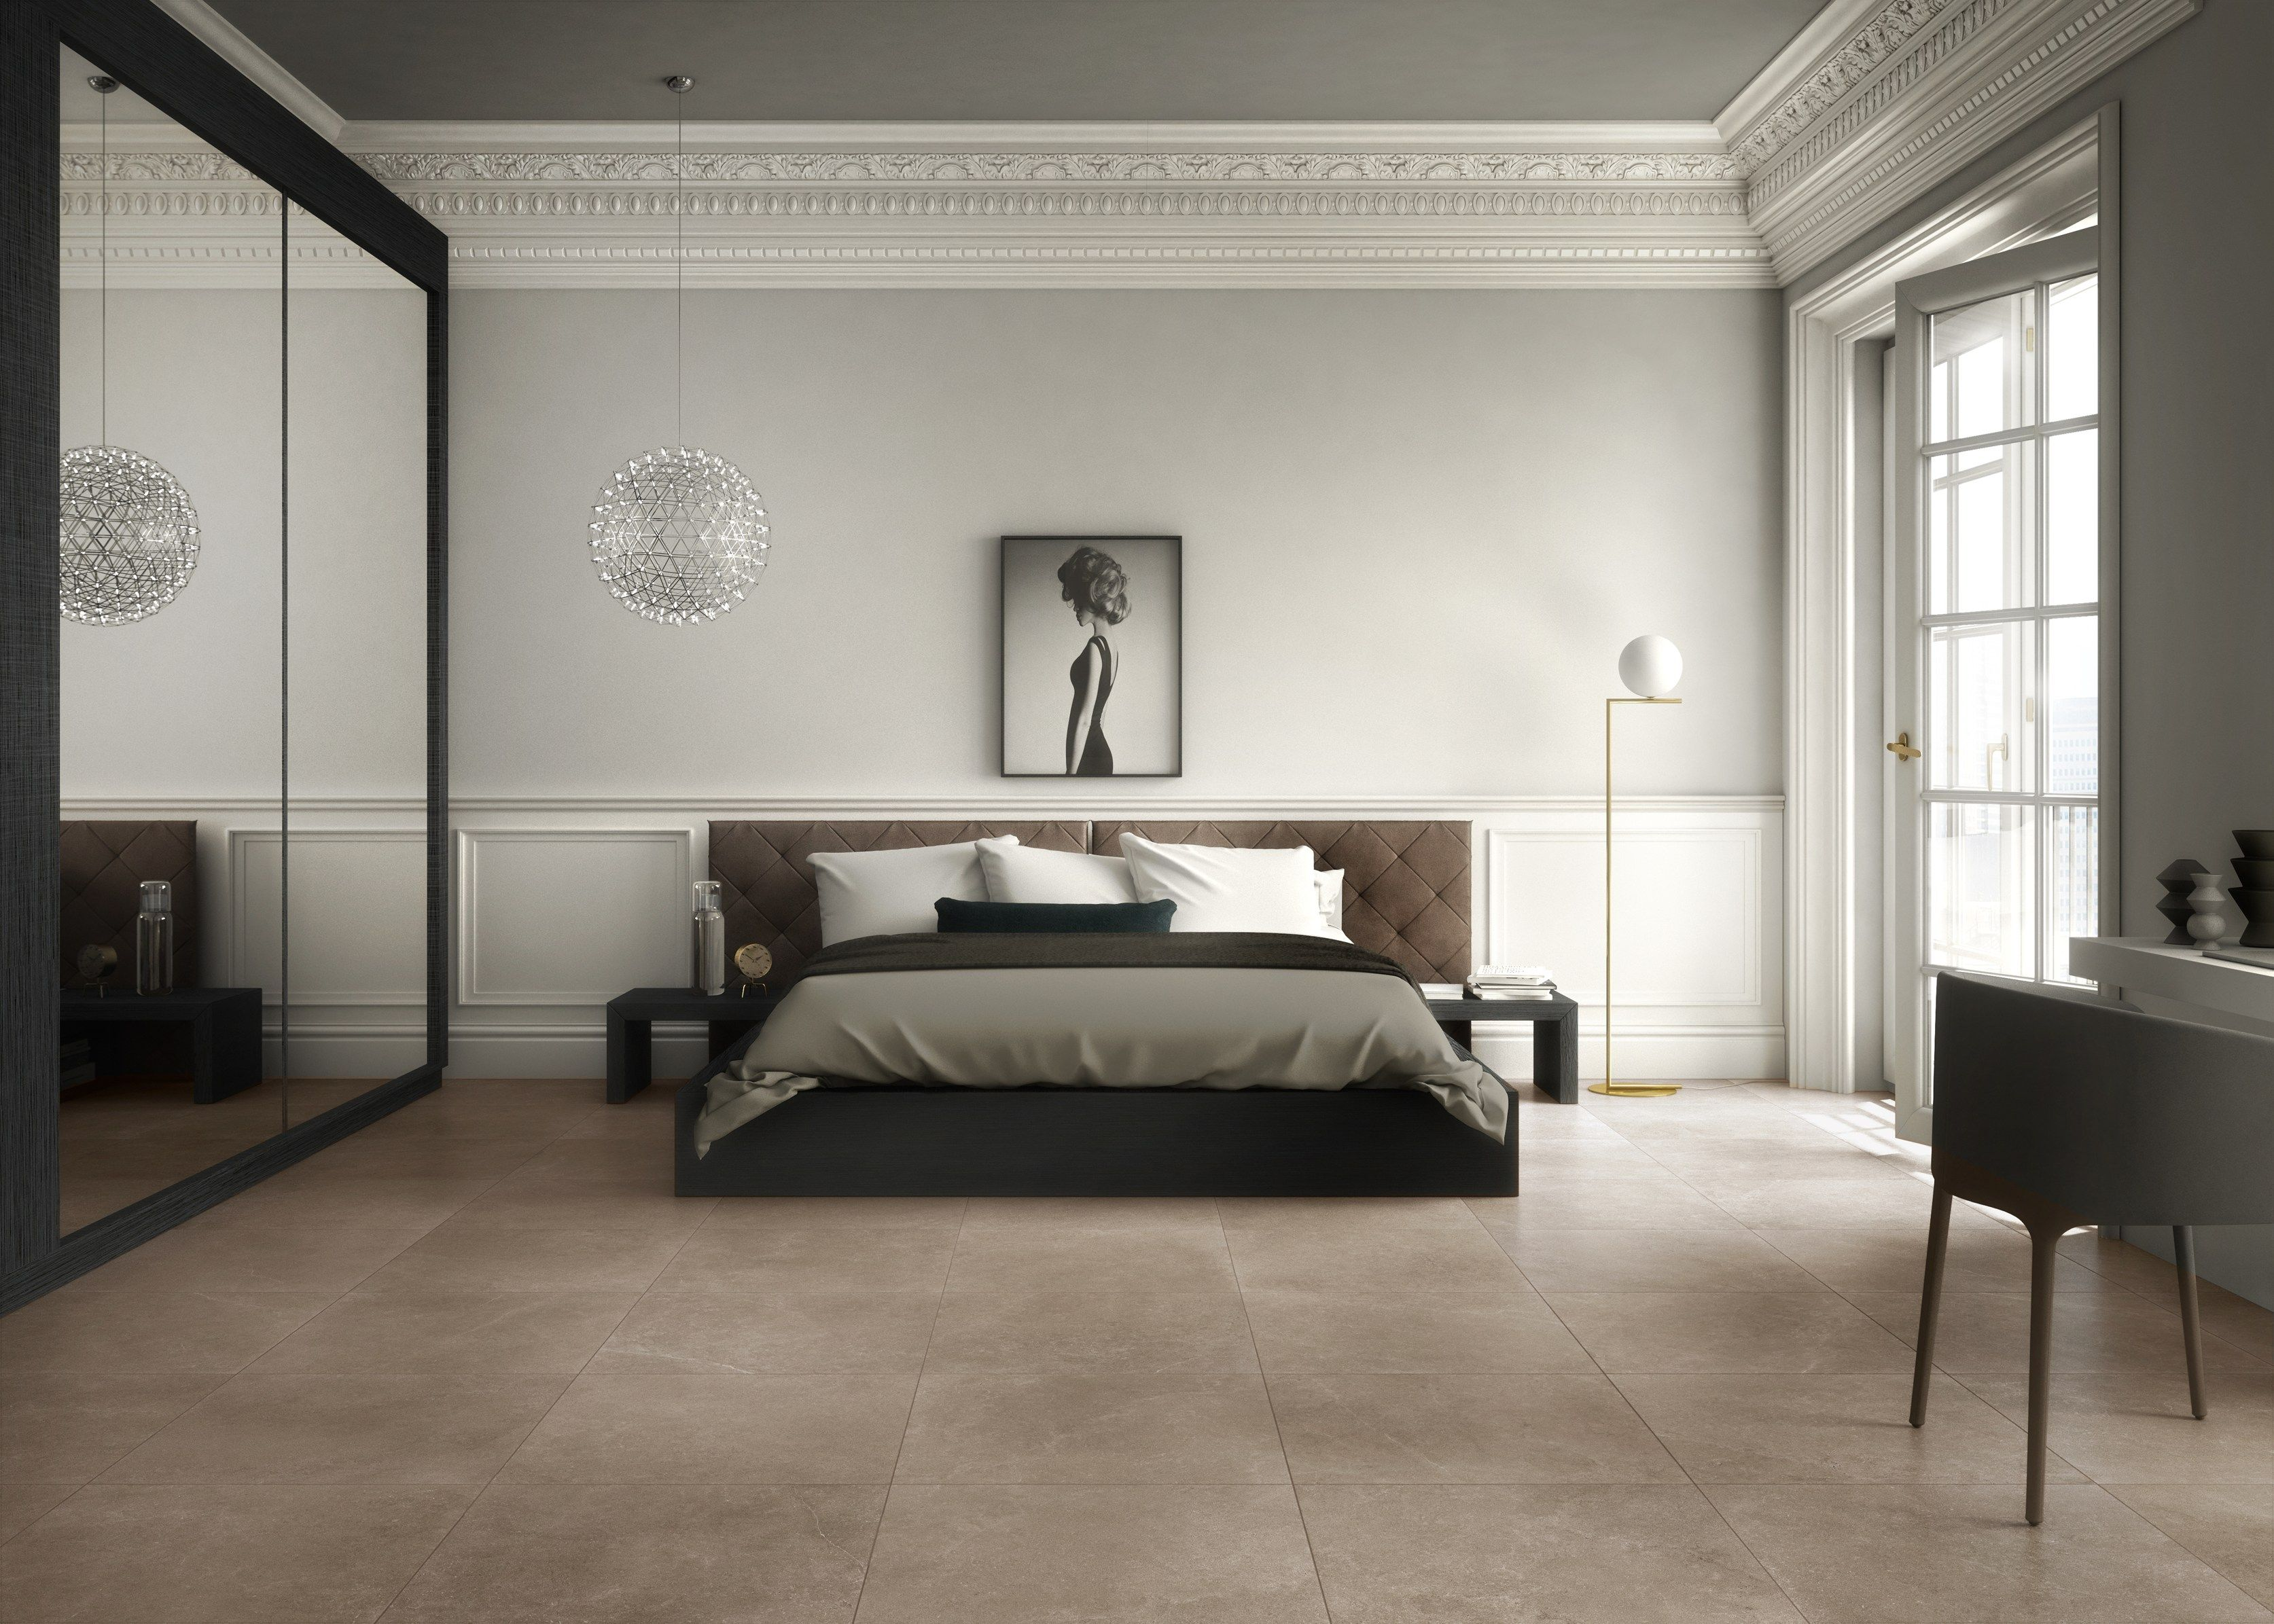 Porcelain Stoneware Wall Floor Tiles With Stone Effect Prime Stone Prime Stone Collection By Panaria Ceramica Zimmer Schlafzimmer Beton Look